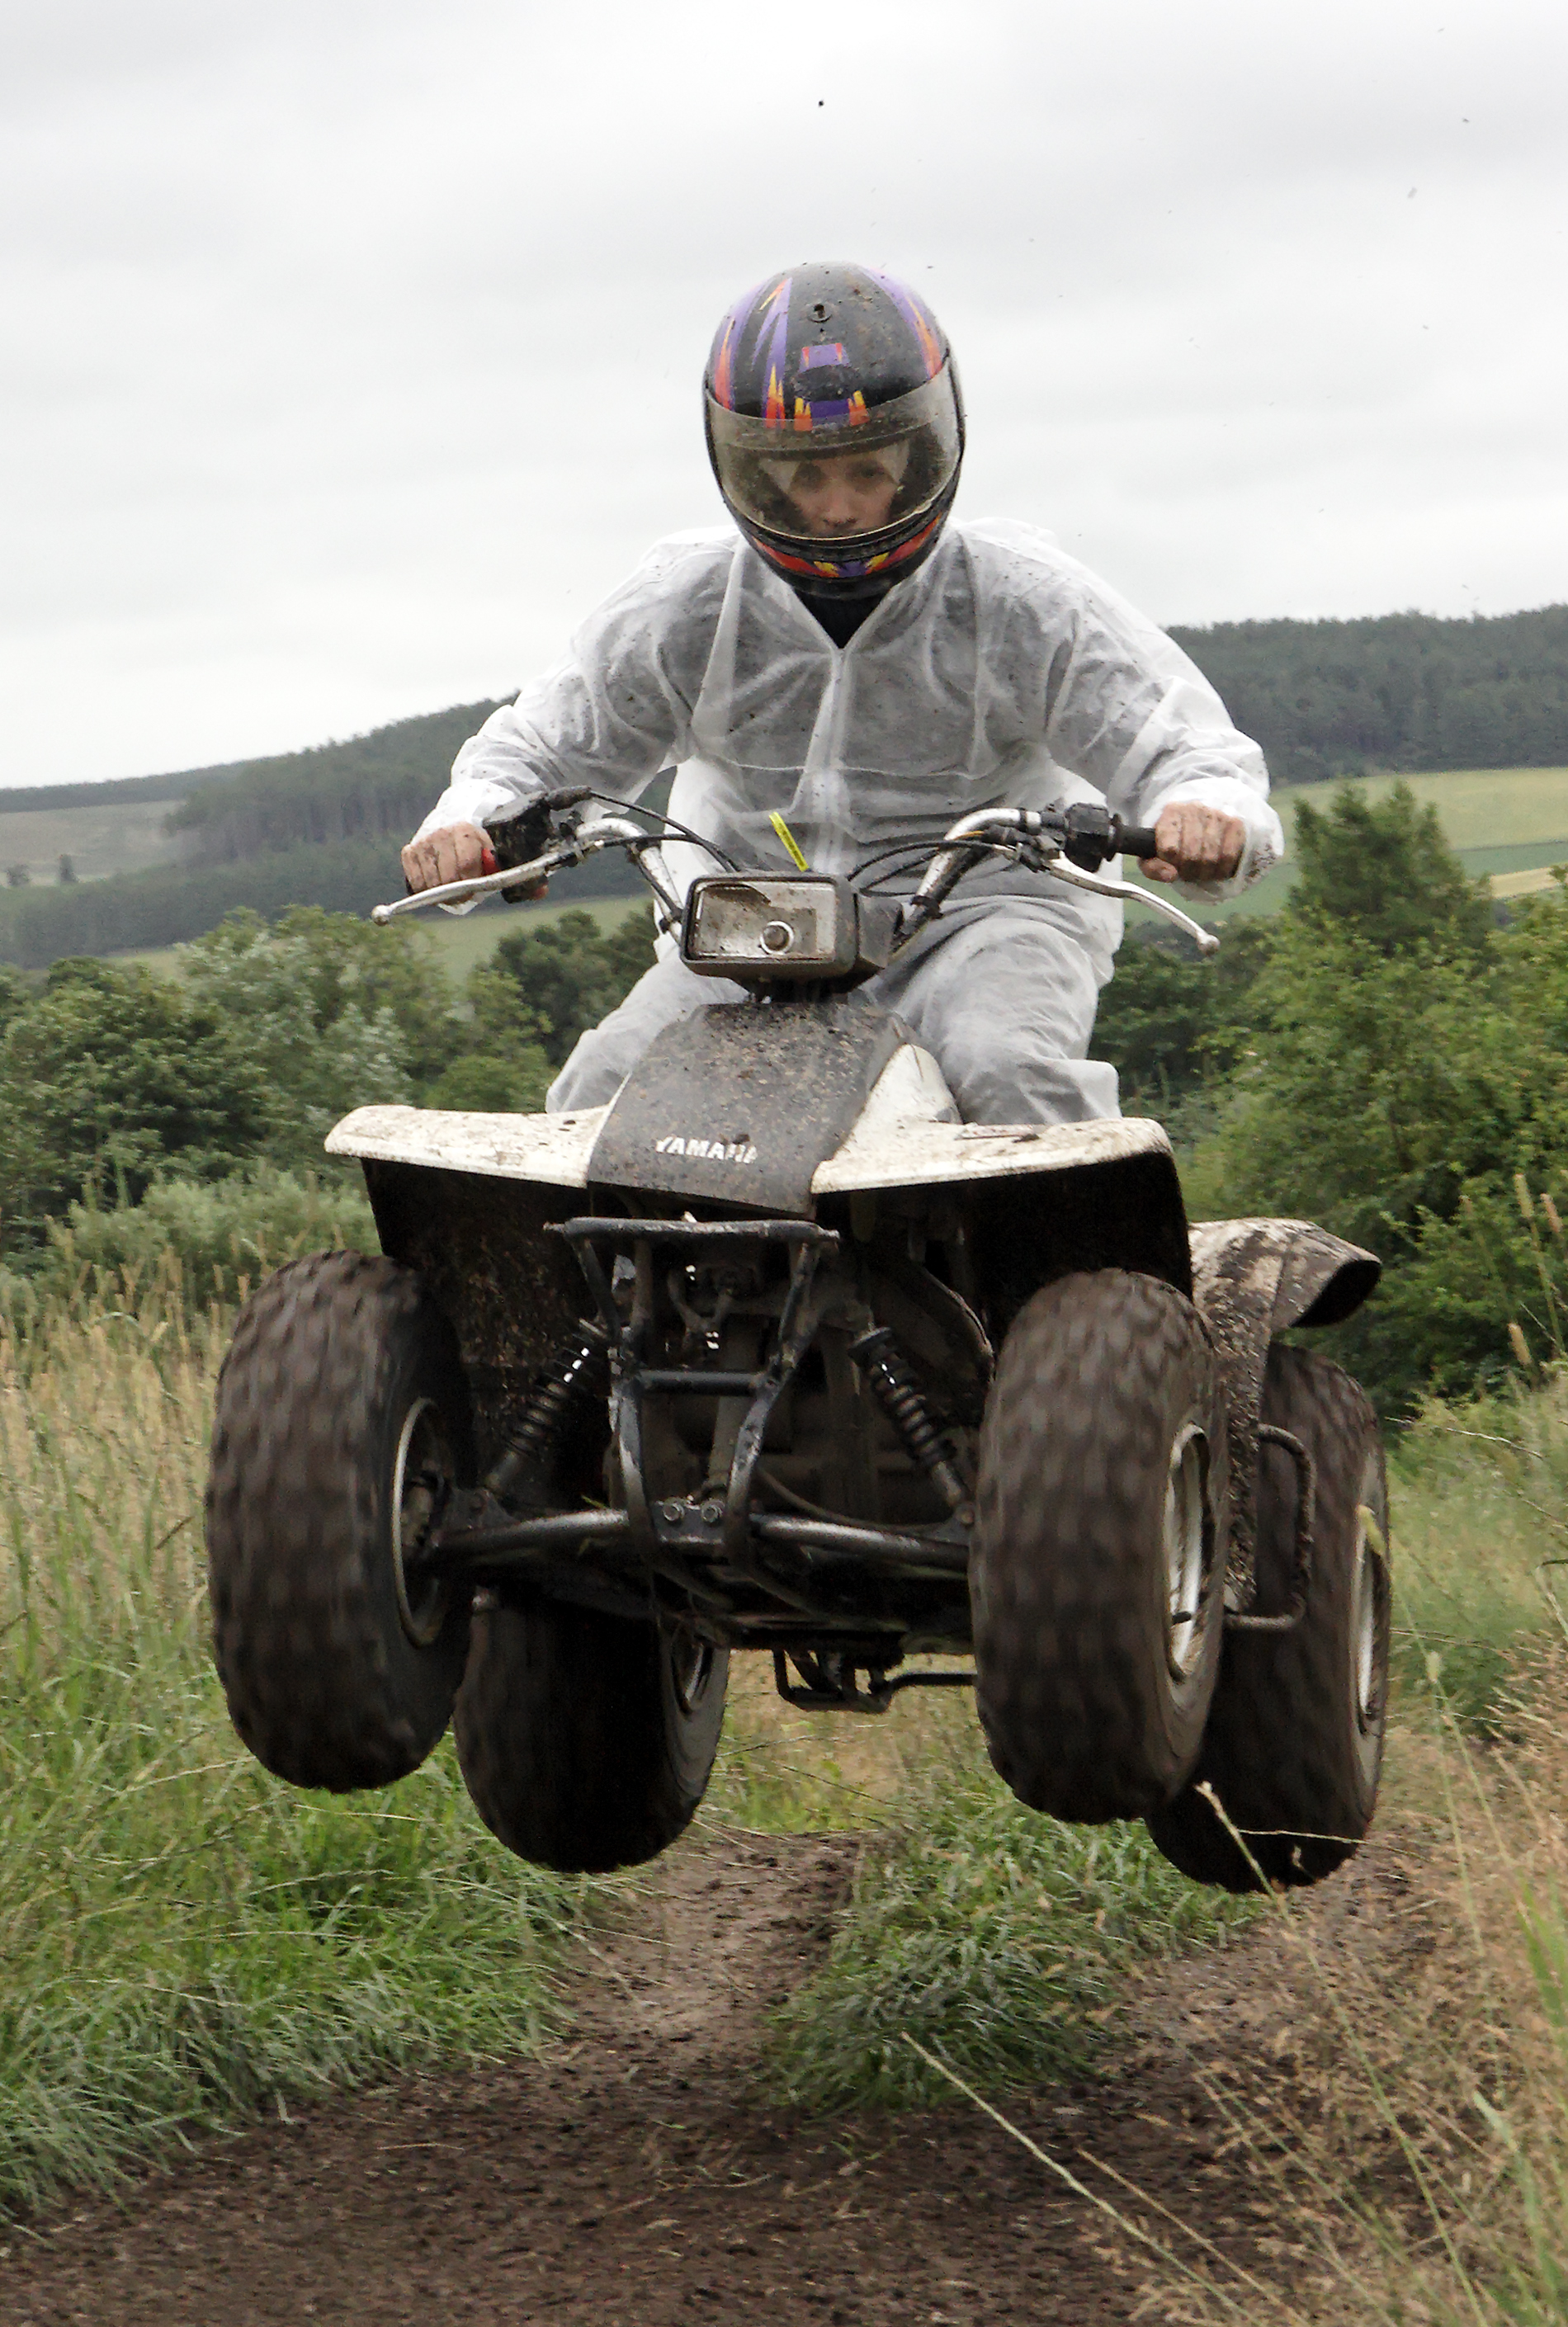 Quad bike Scotland.jpg - Quad bike